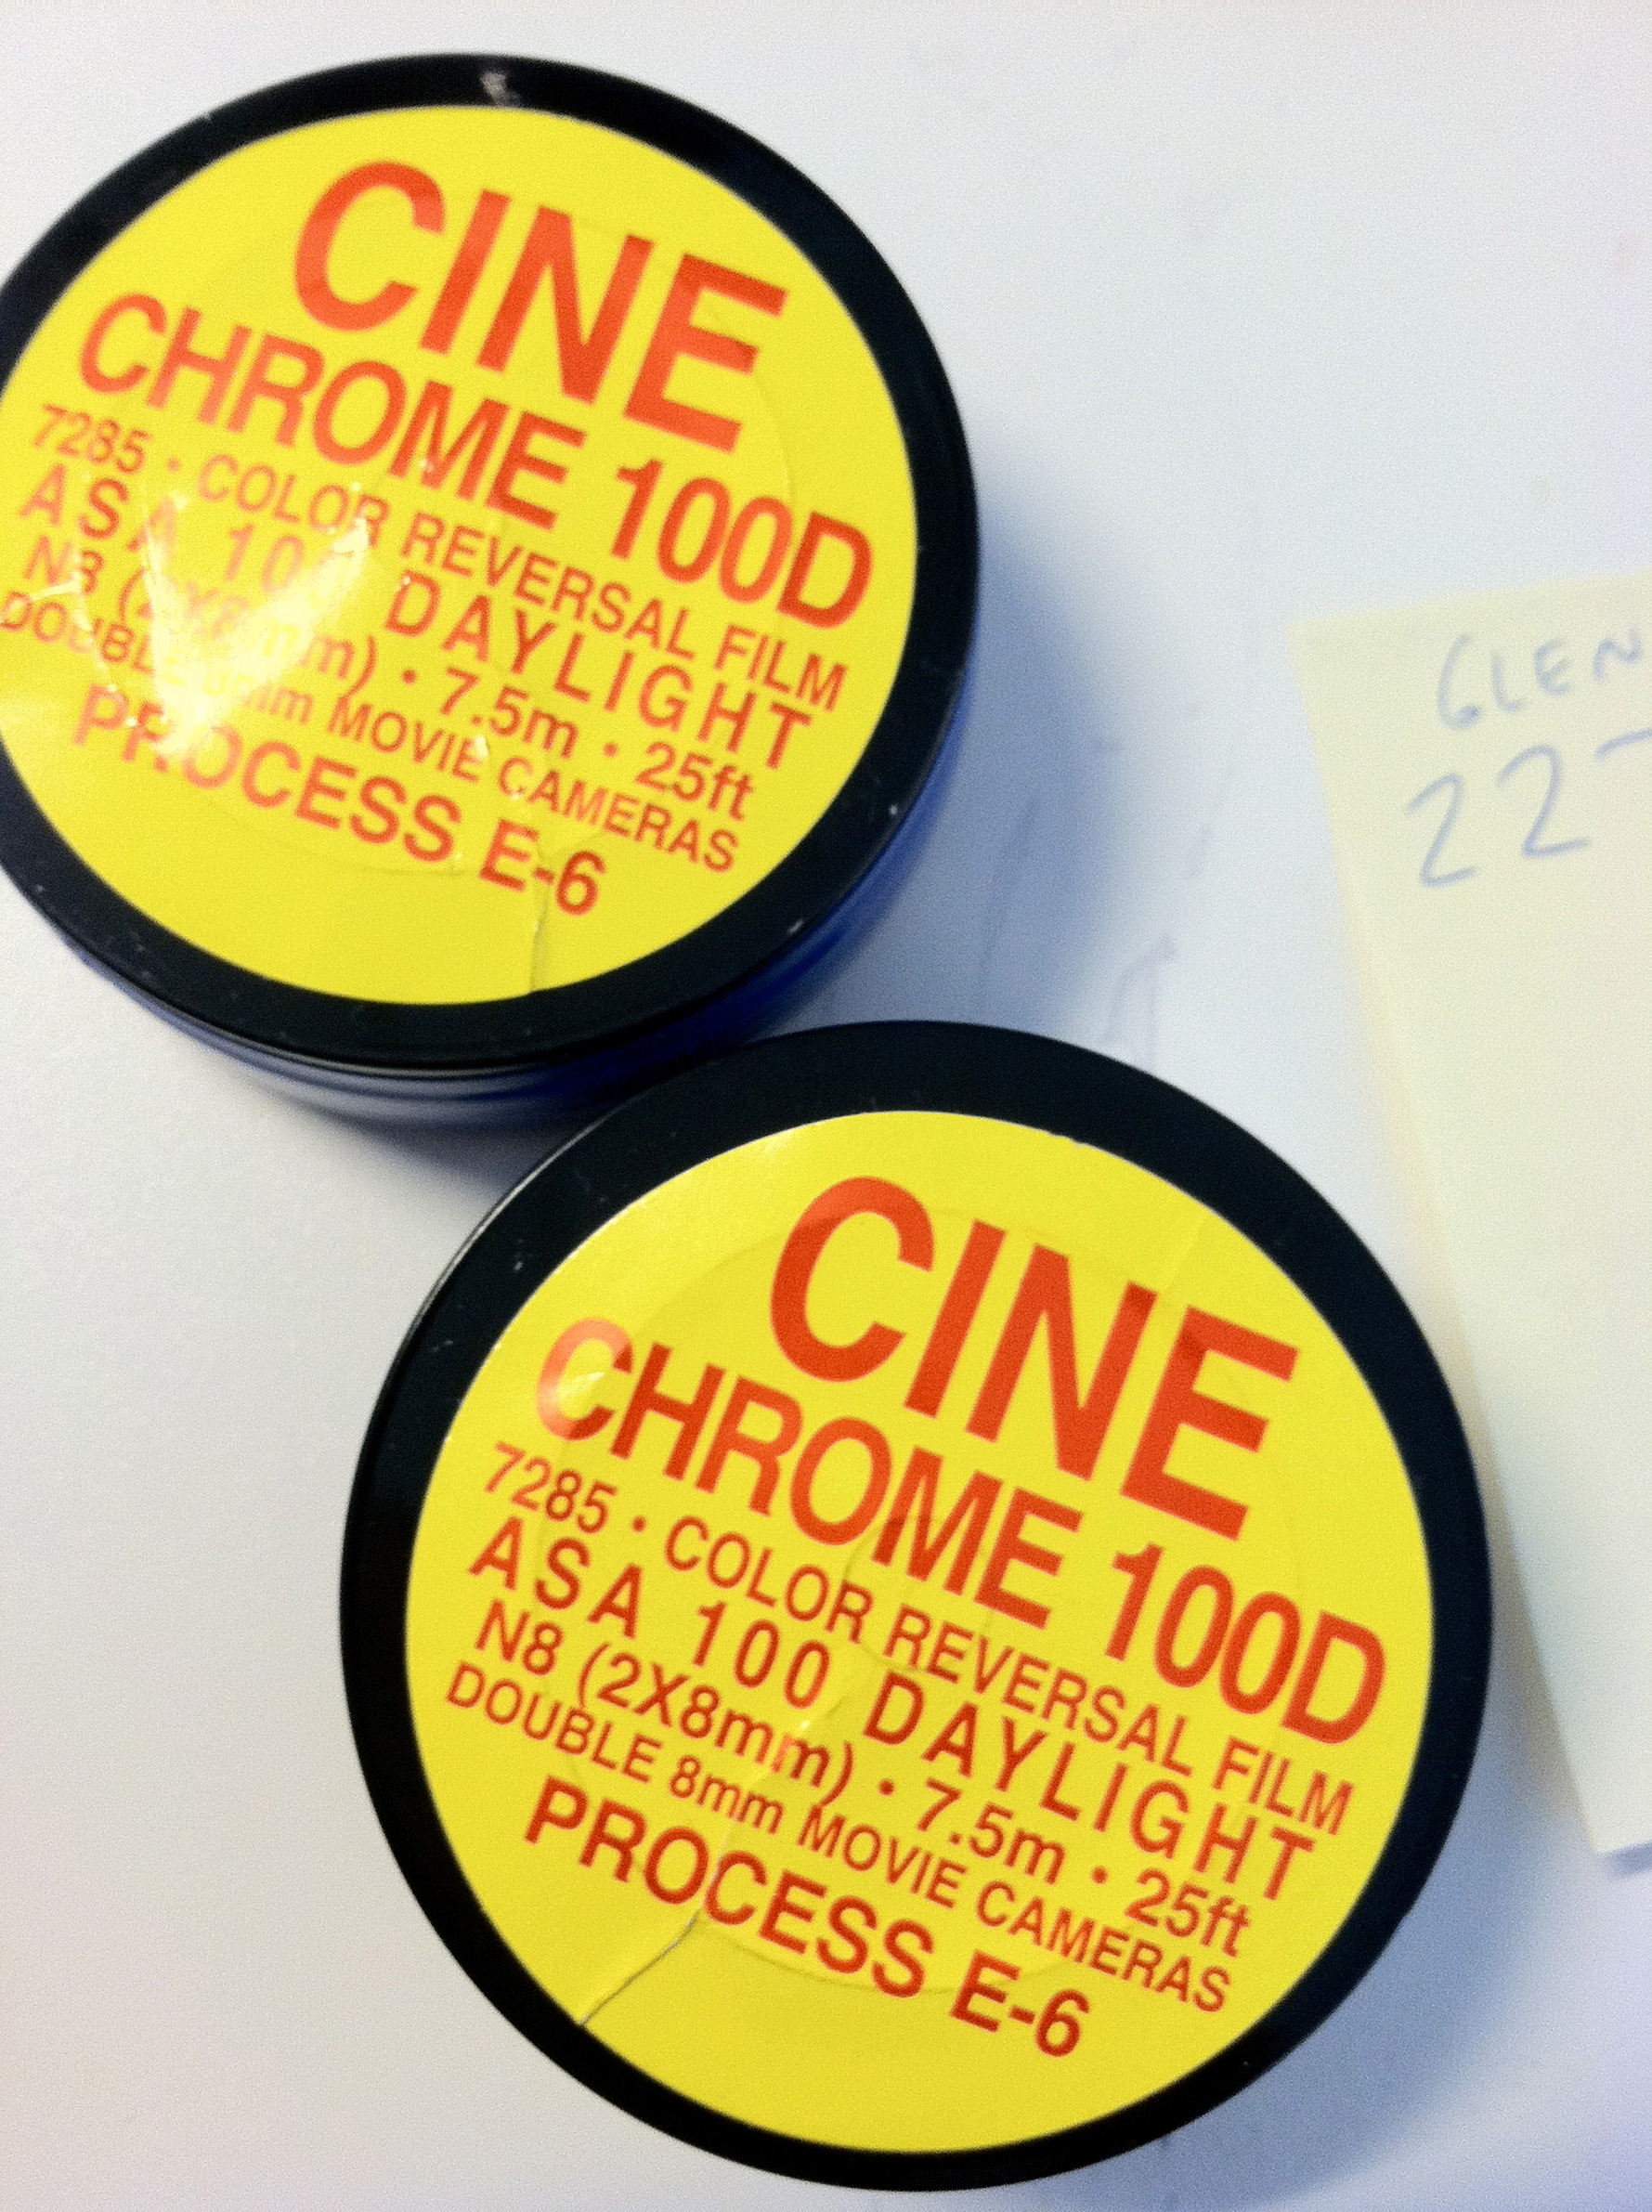 The only 16mm film that comes in 25ft rolls now are double 8mm rolls. These are pretty hard to find these days.